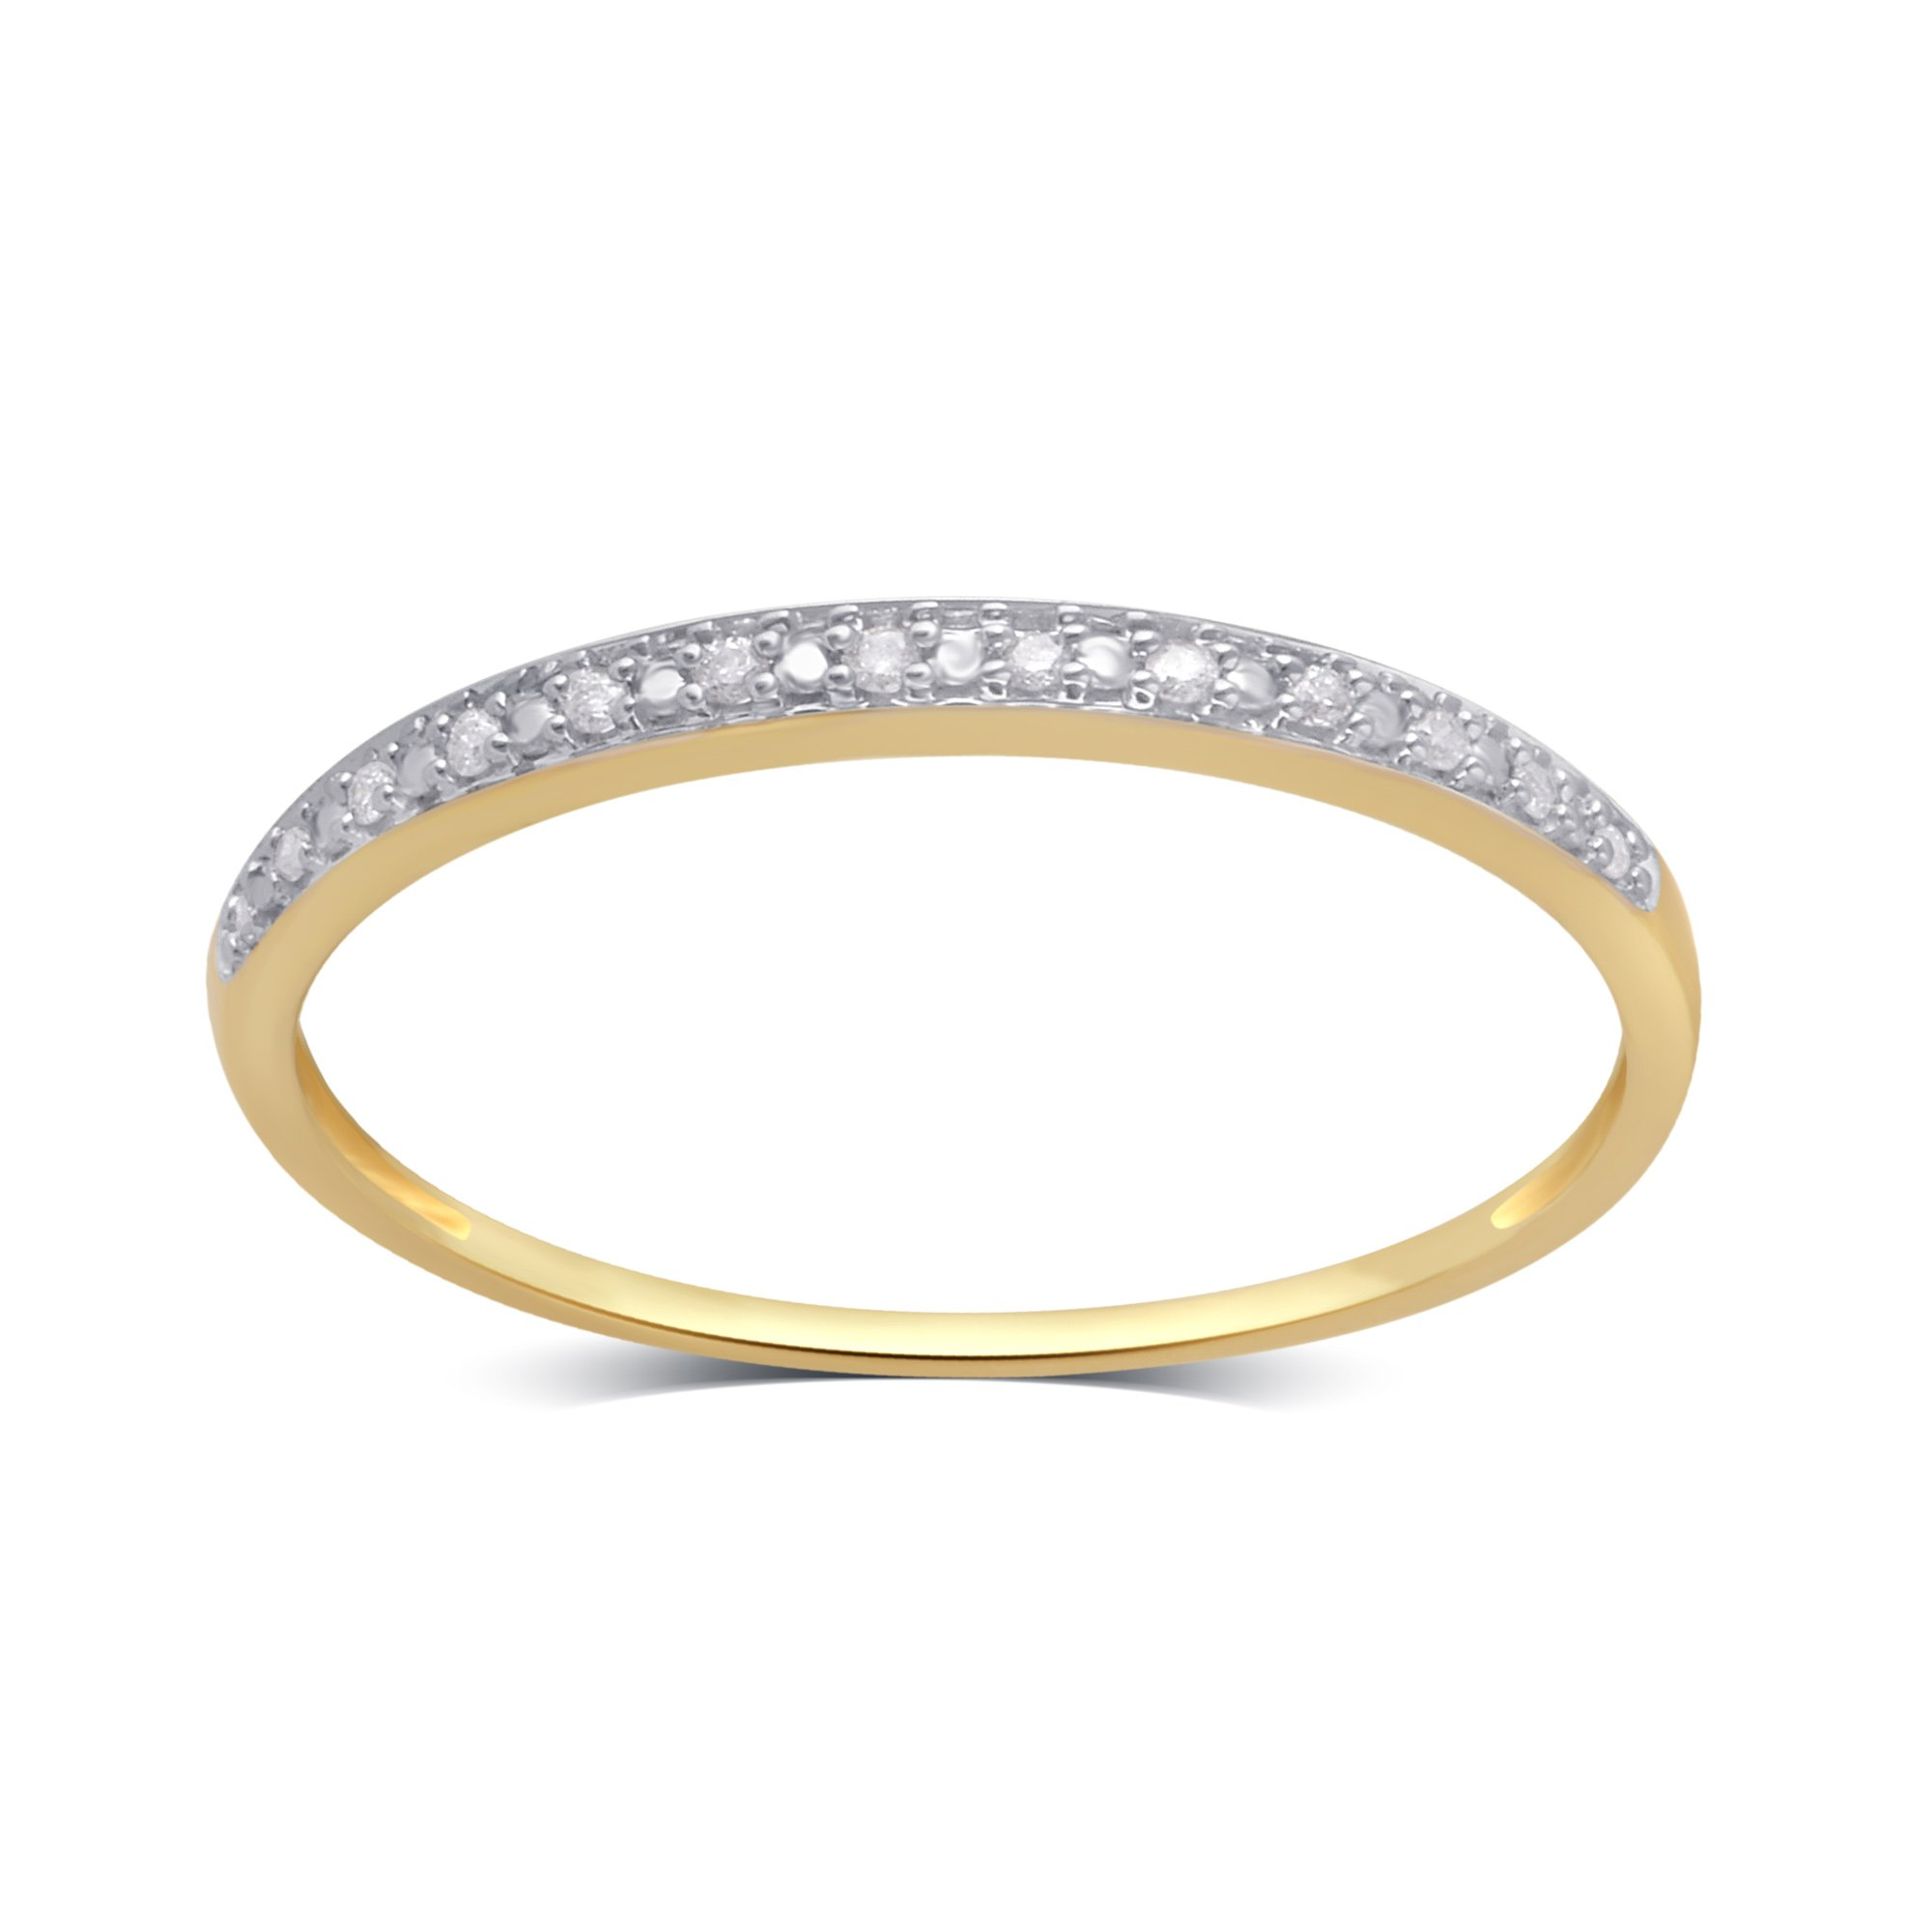 0.05 CTTW Round Diamond Wedding Band in 10K Yellow Gold by Brilliant Diamond (Image #1)